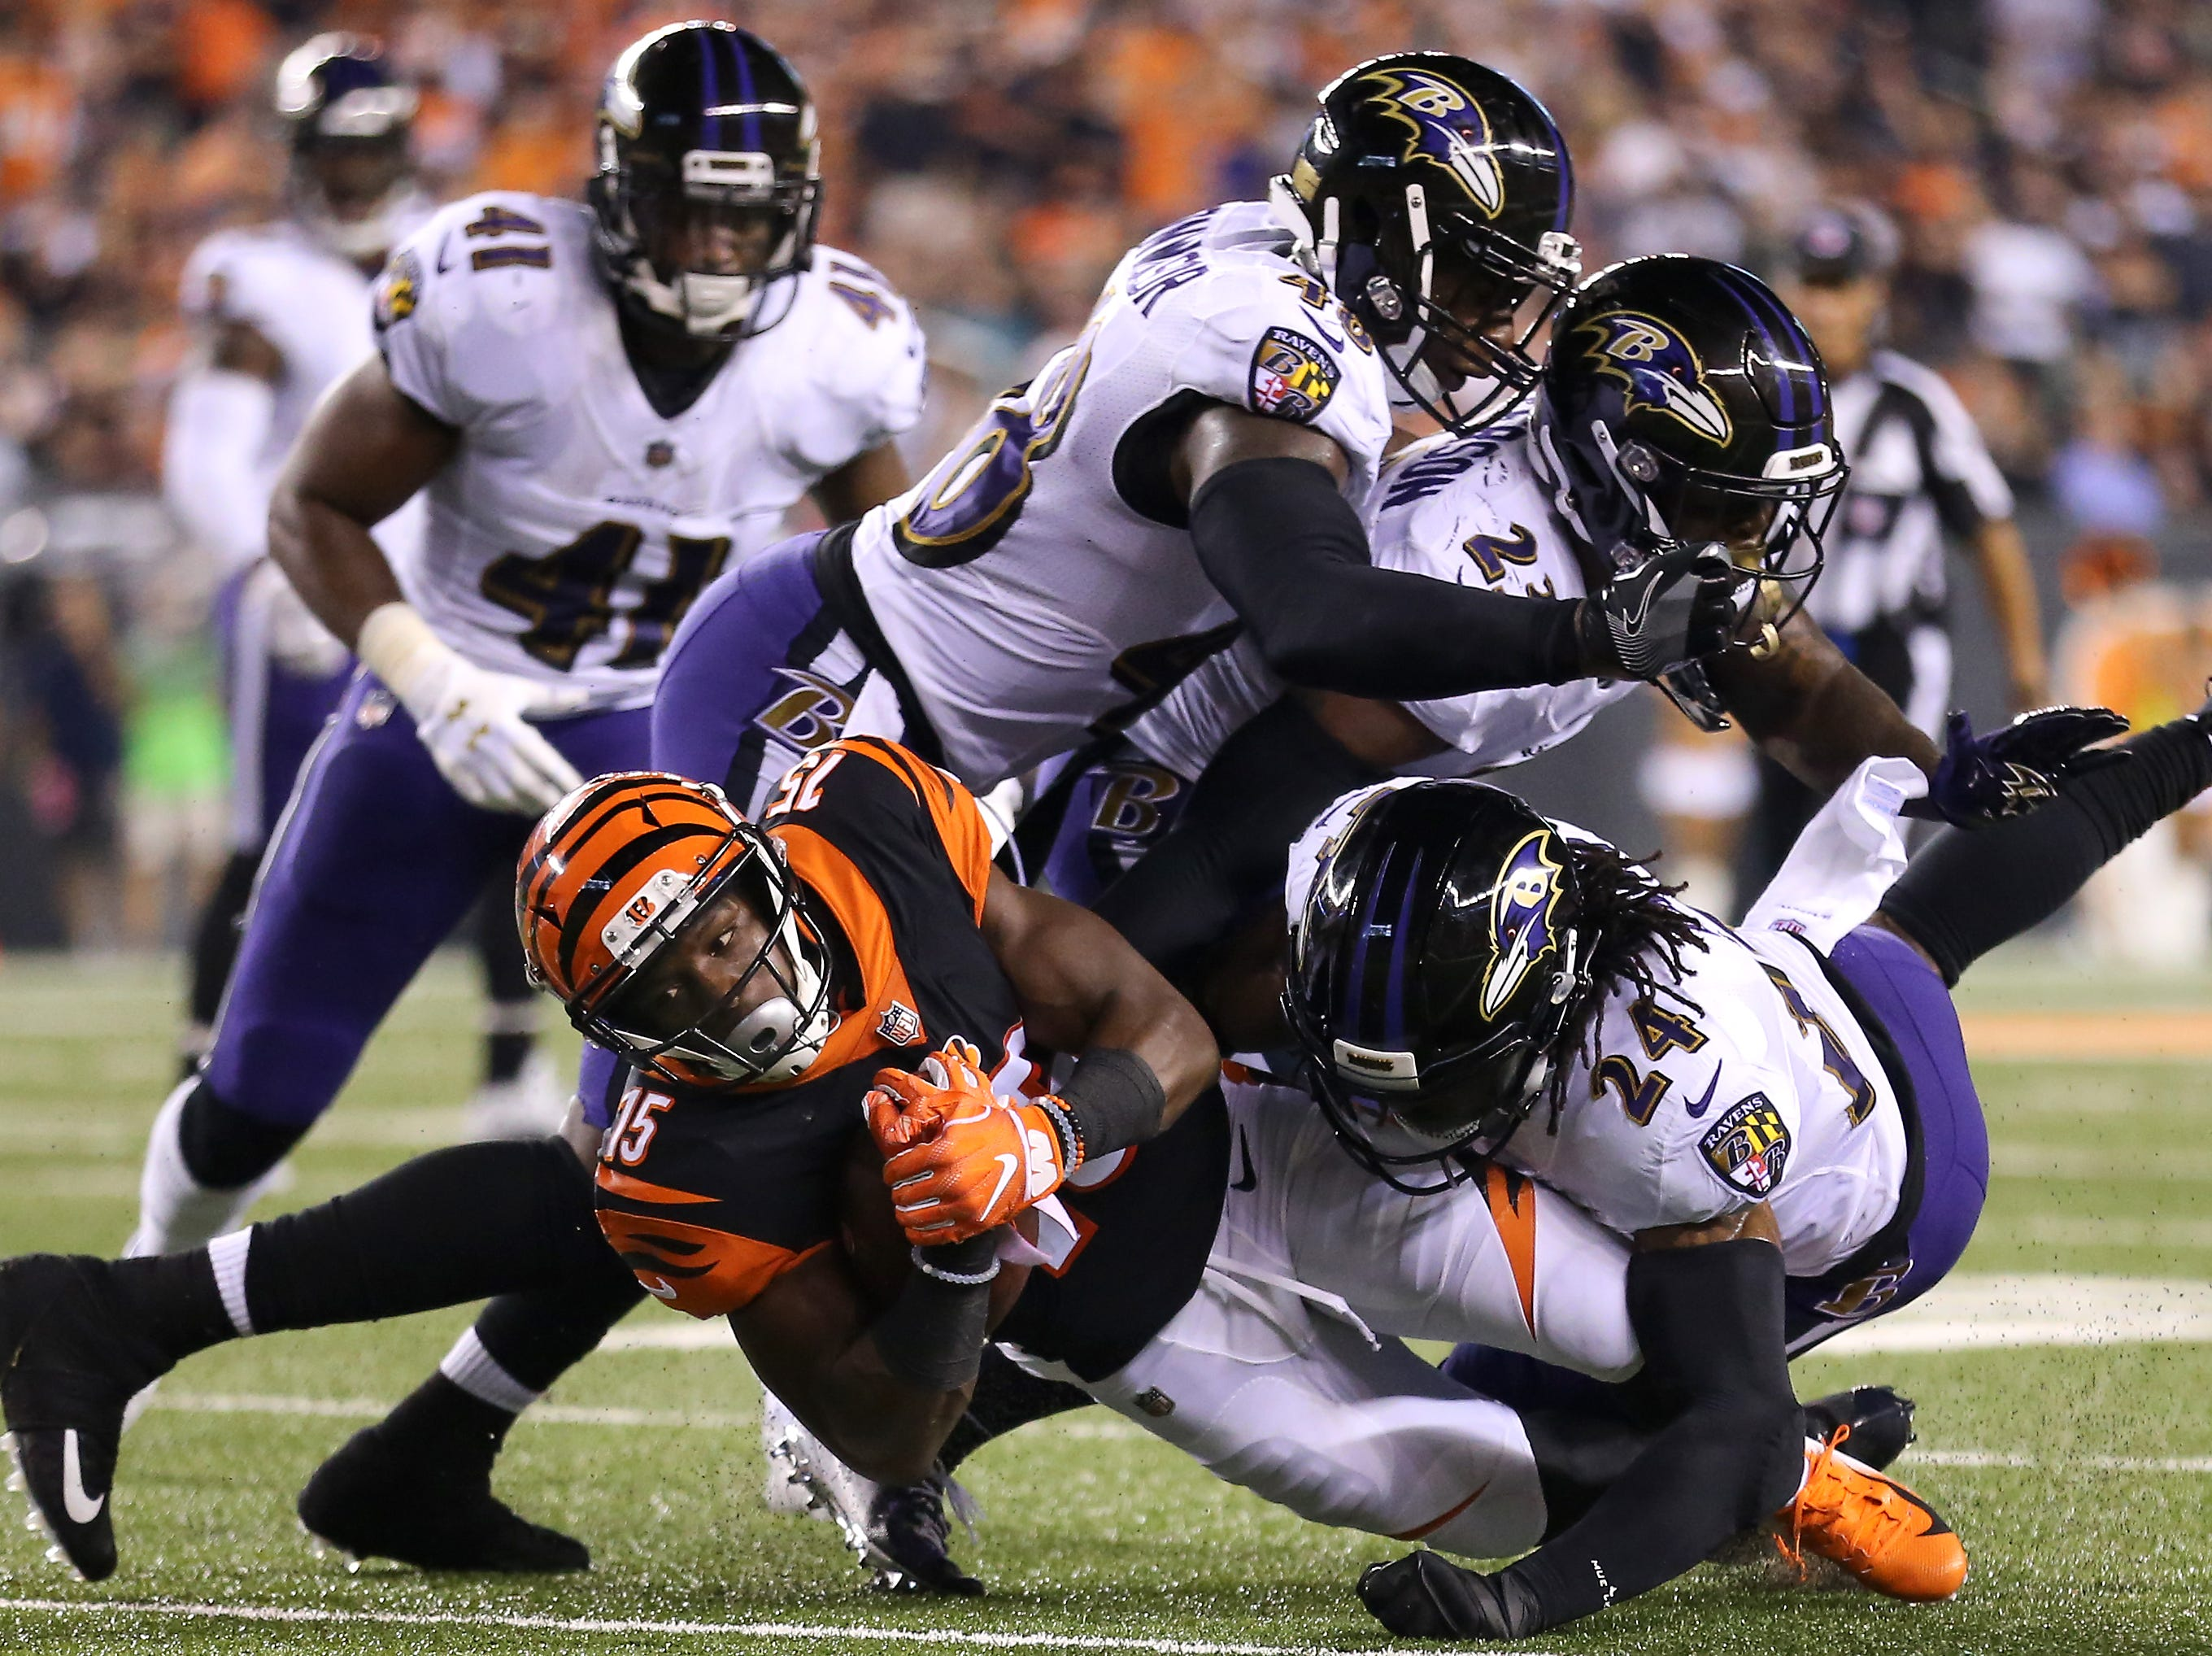 Cincinnati Bengals wide receiver John Ross (15) leans forward for extra yards as Baltimore Ravens defensive back Brandon Carr (24) makes the tackle in the fourth quarter during the Week 2 NFL football game between the Baltimore Ravens and the Cincinnati Bengals, Friday, Sept. 14, 2018, Paul Brown Stadium in Cincinnati. Cincinnati won 34-23.